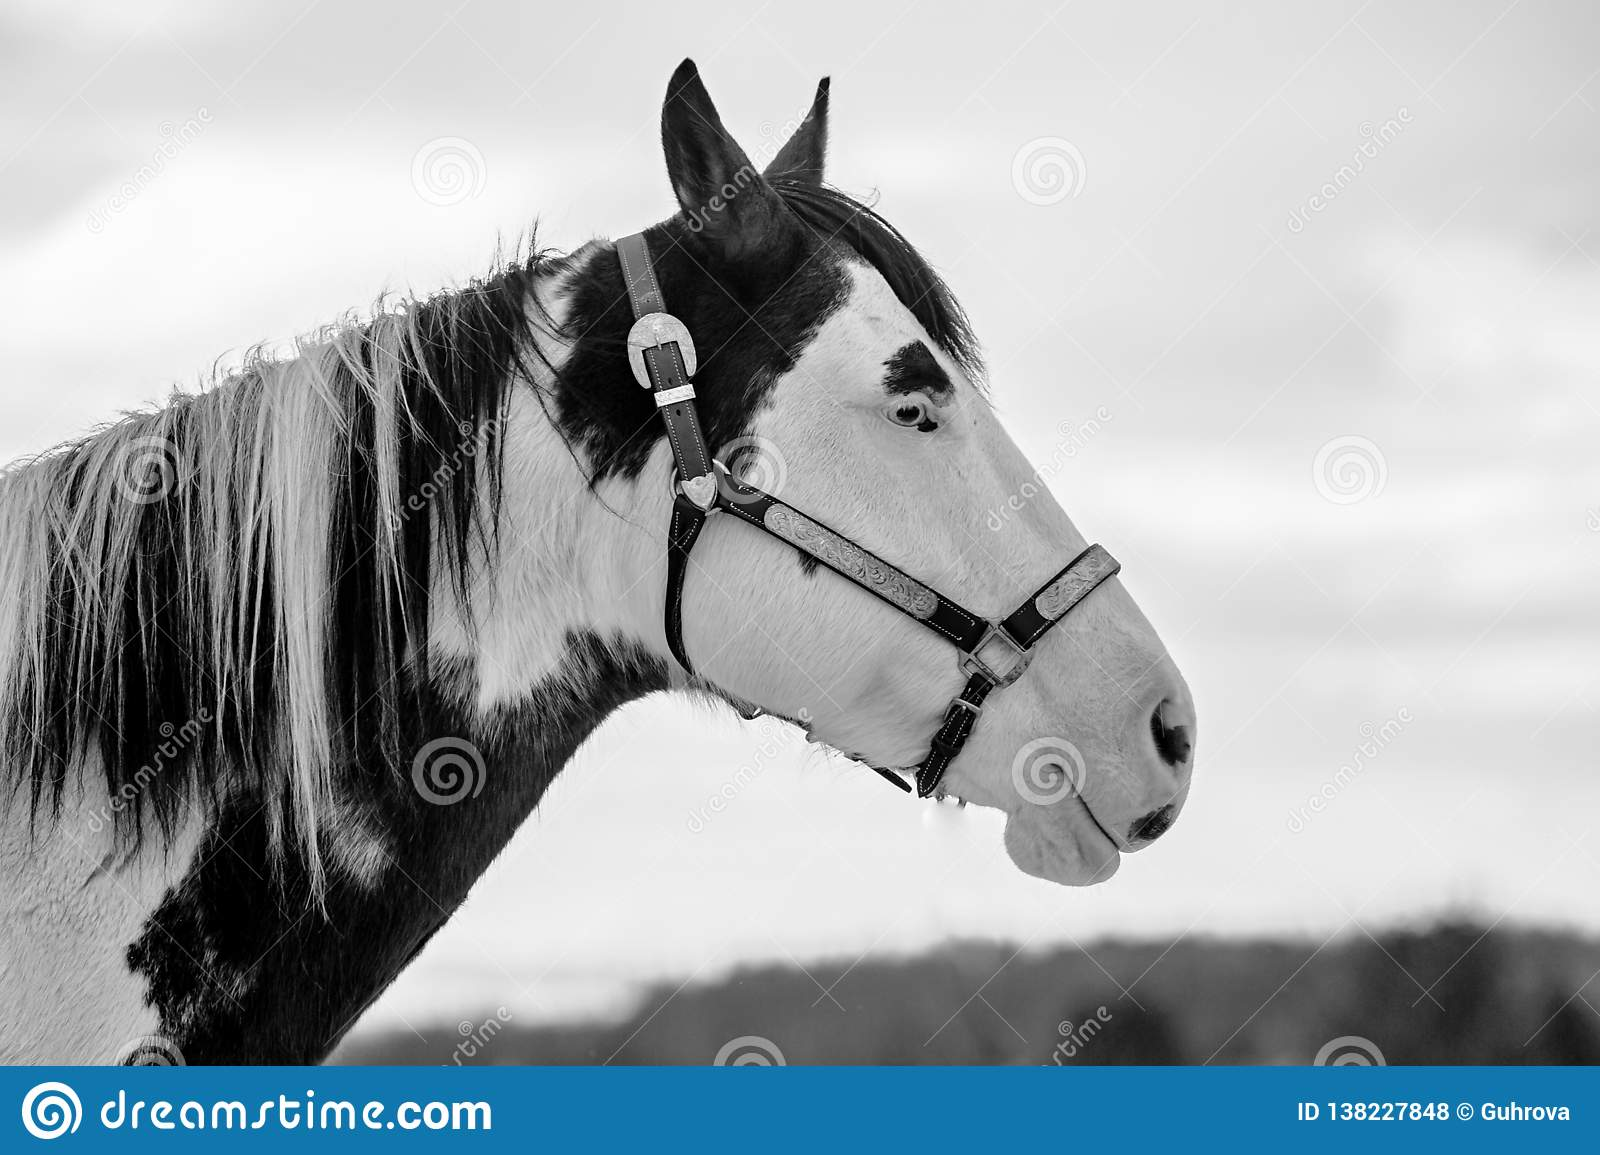 In profile black and white portrait of beautiful white and black horse